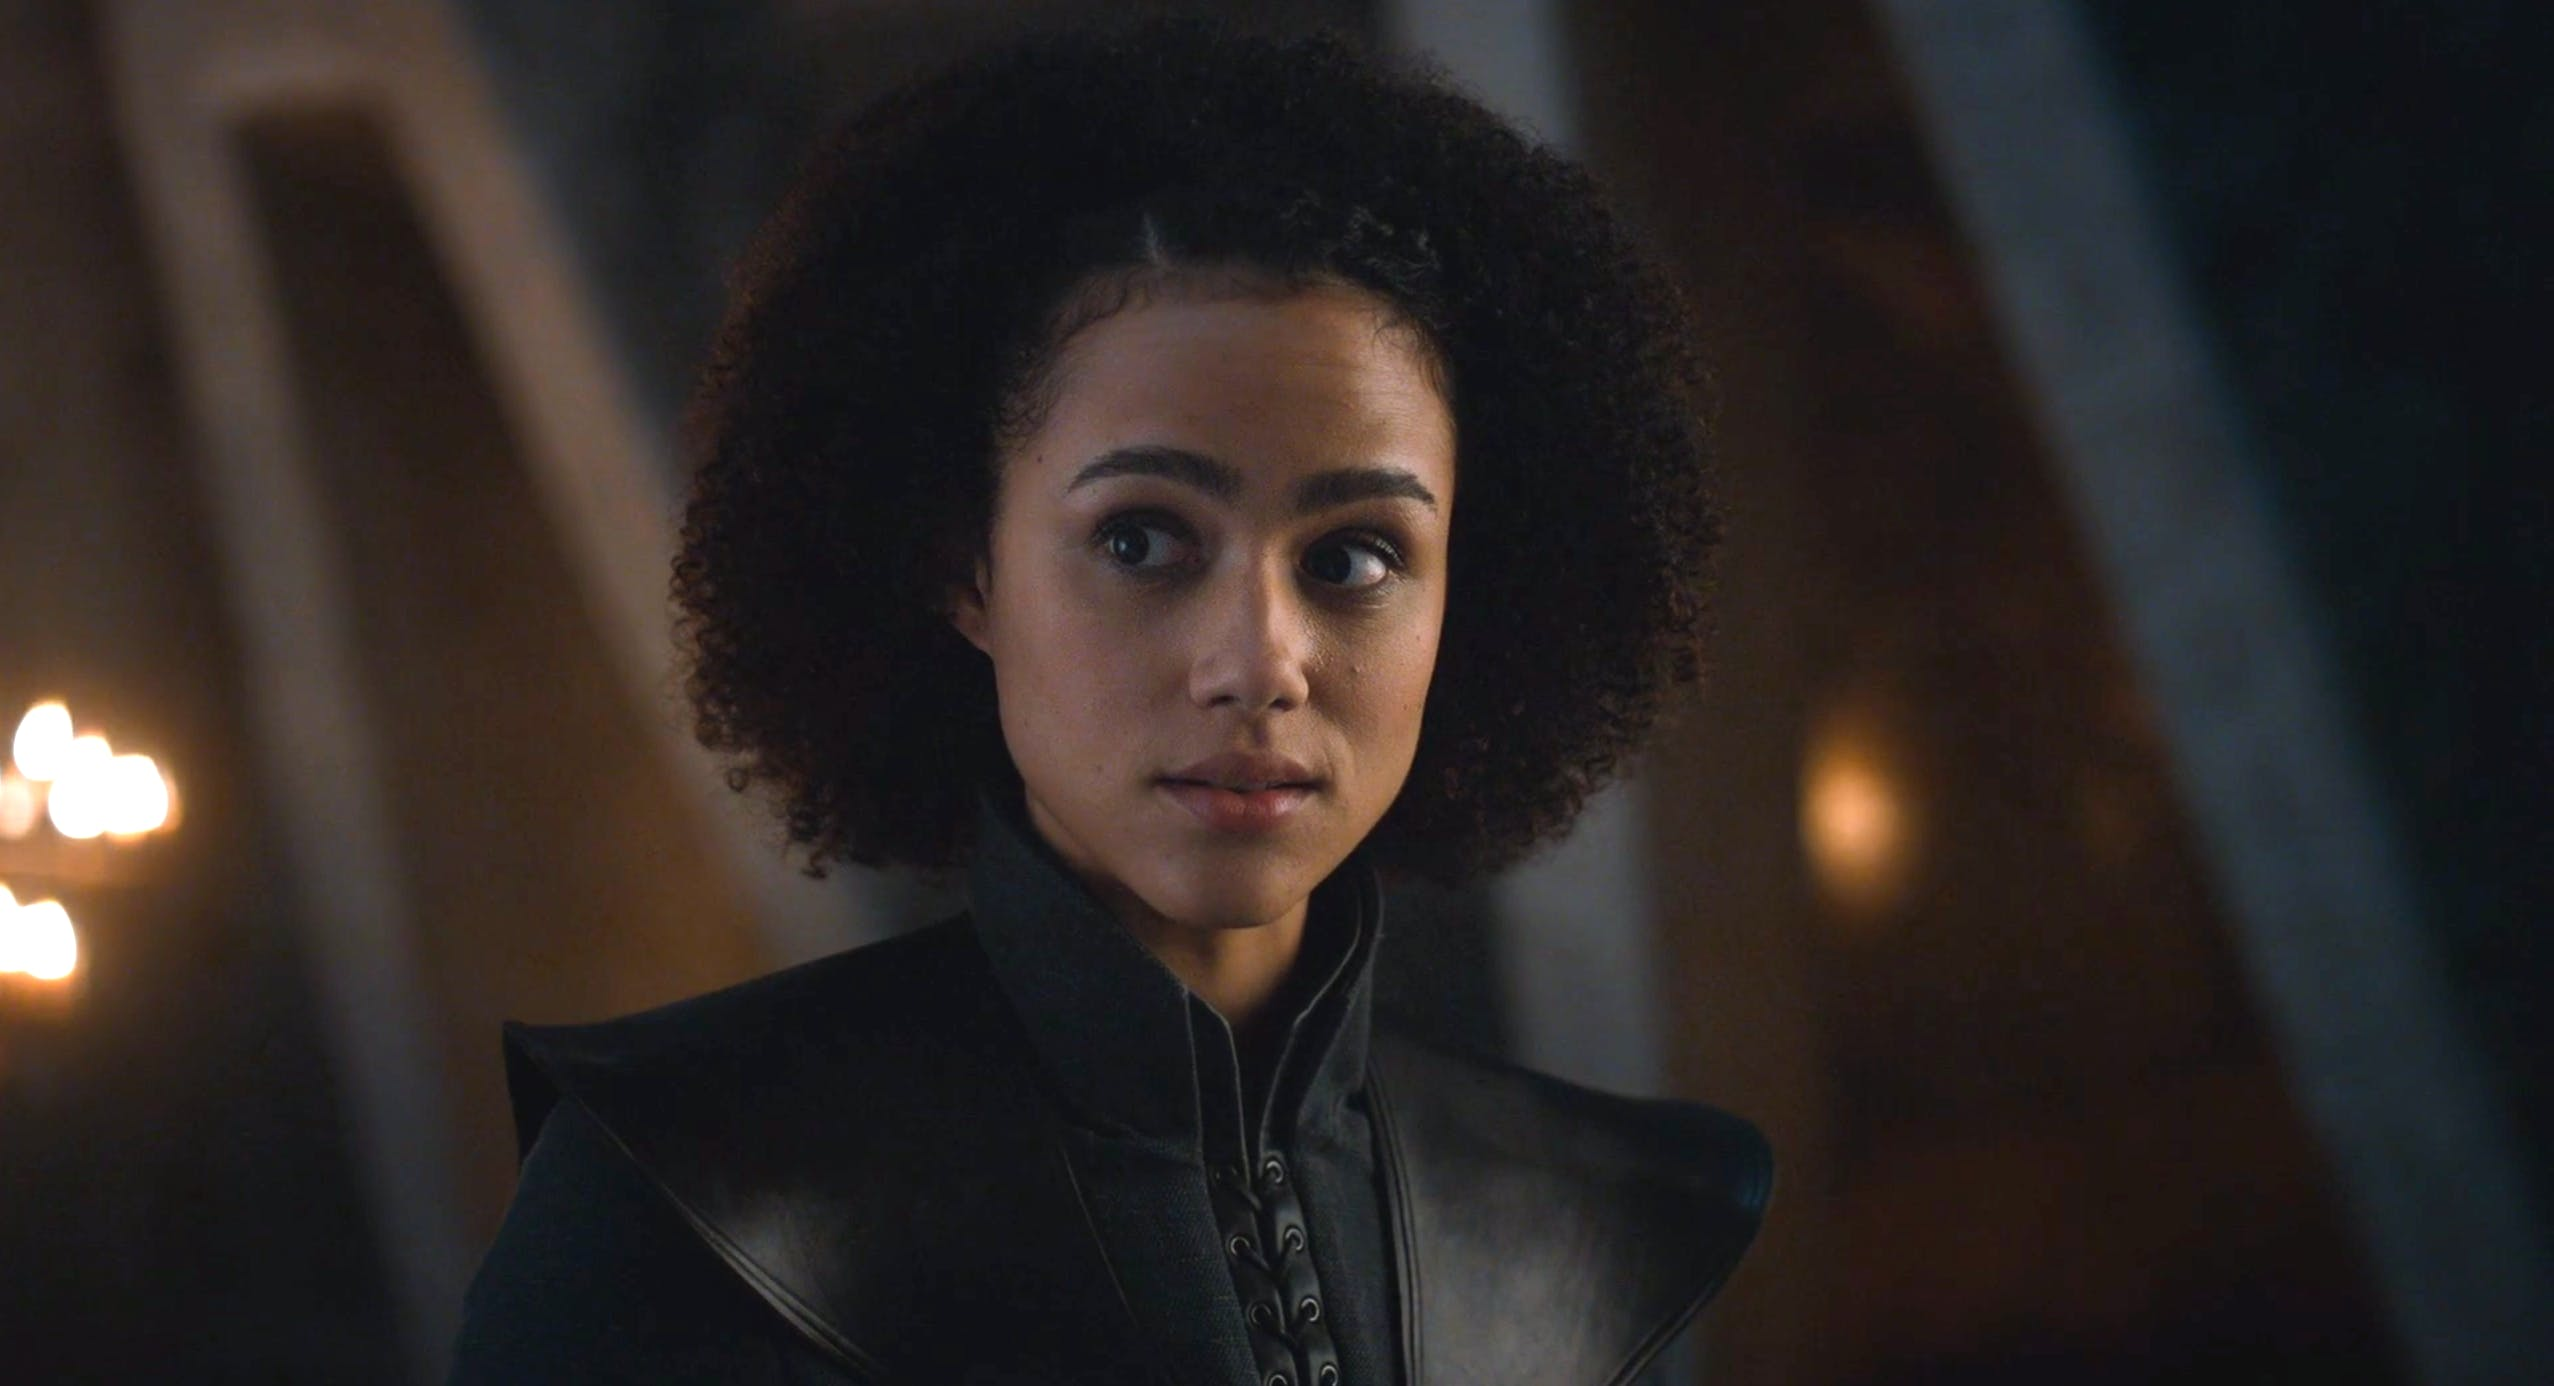 Game of Thrones character Missandei.